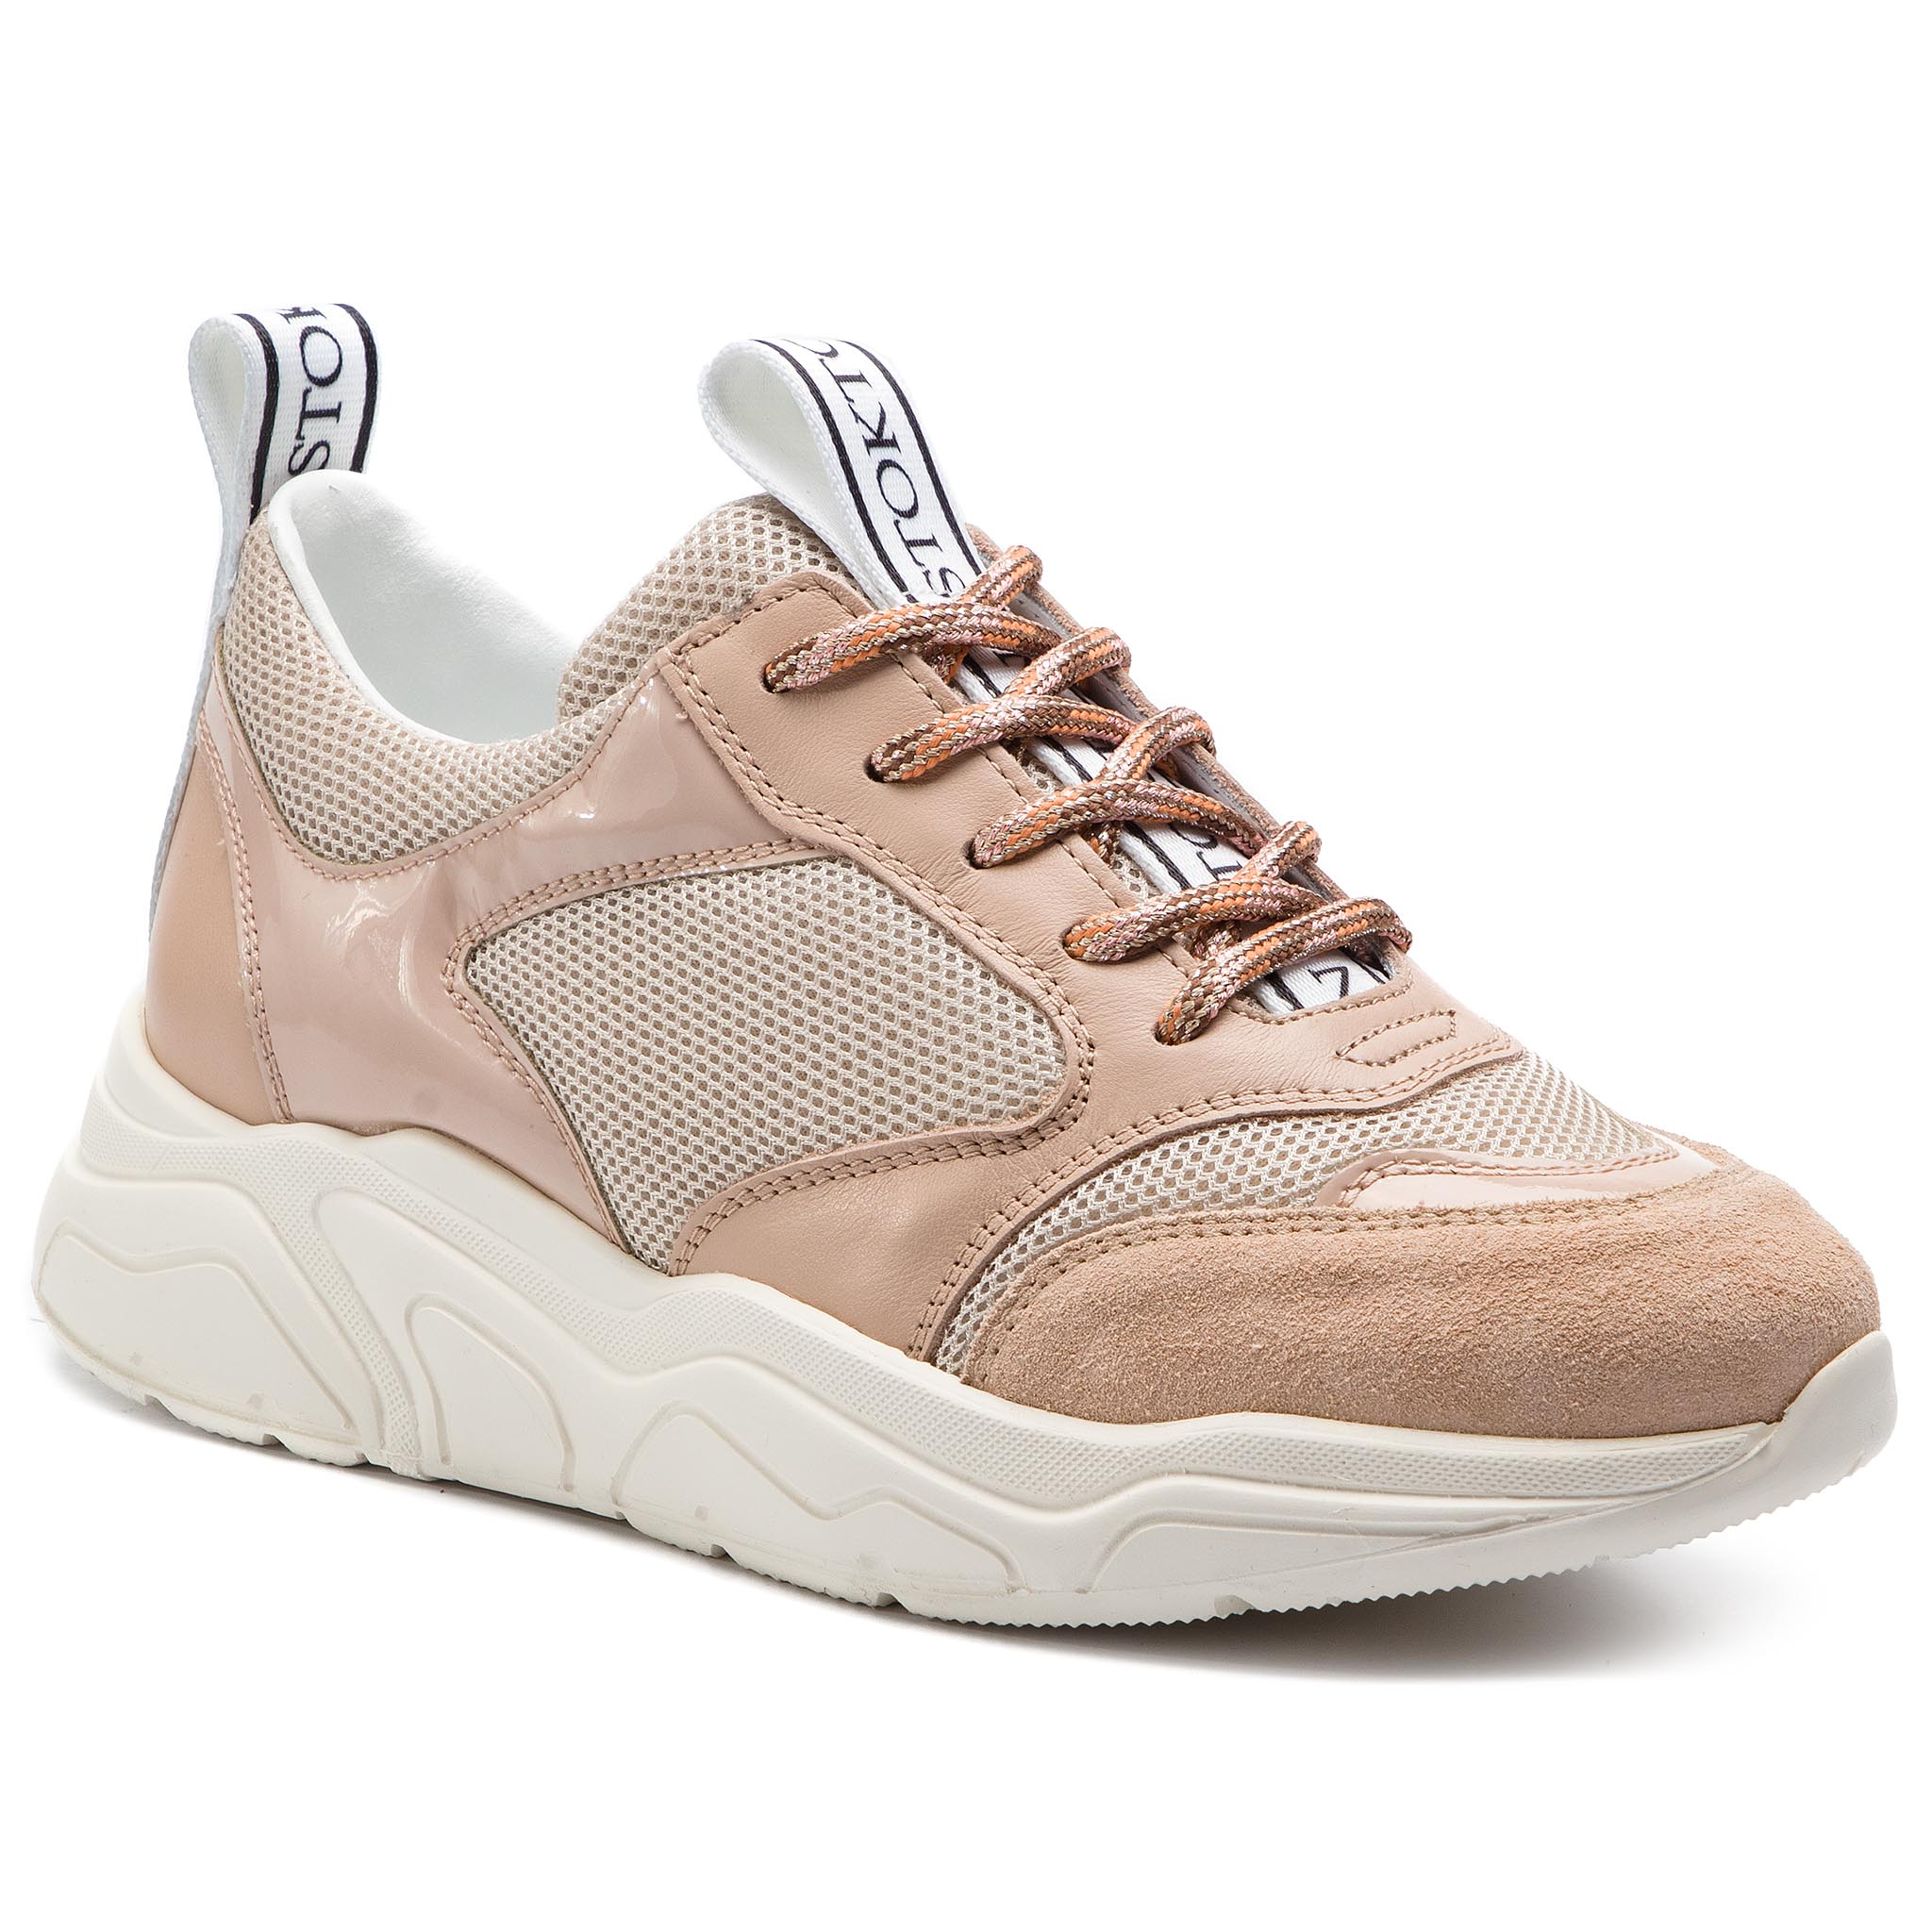 Sneakers STOKTON - 33-D-SS19 Variante Nude